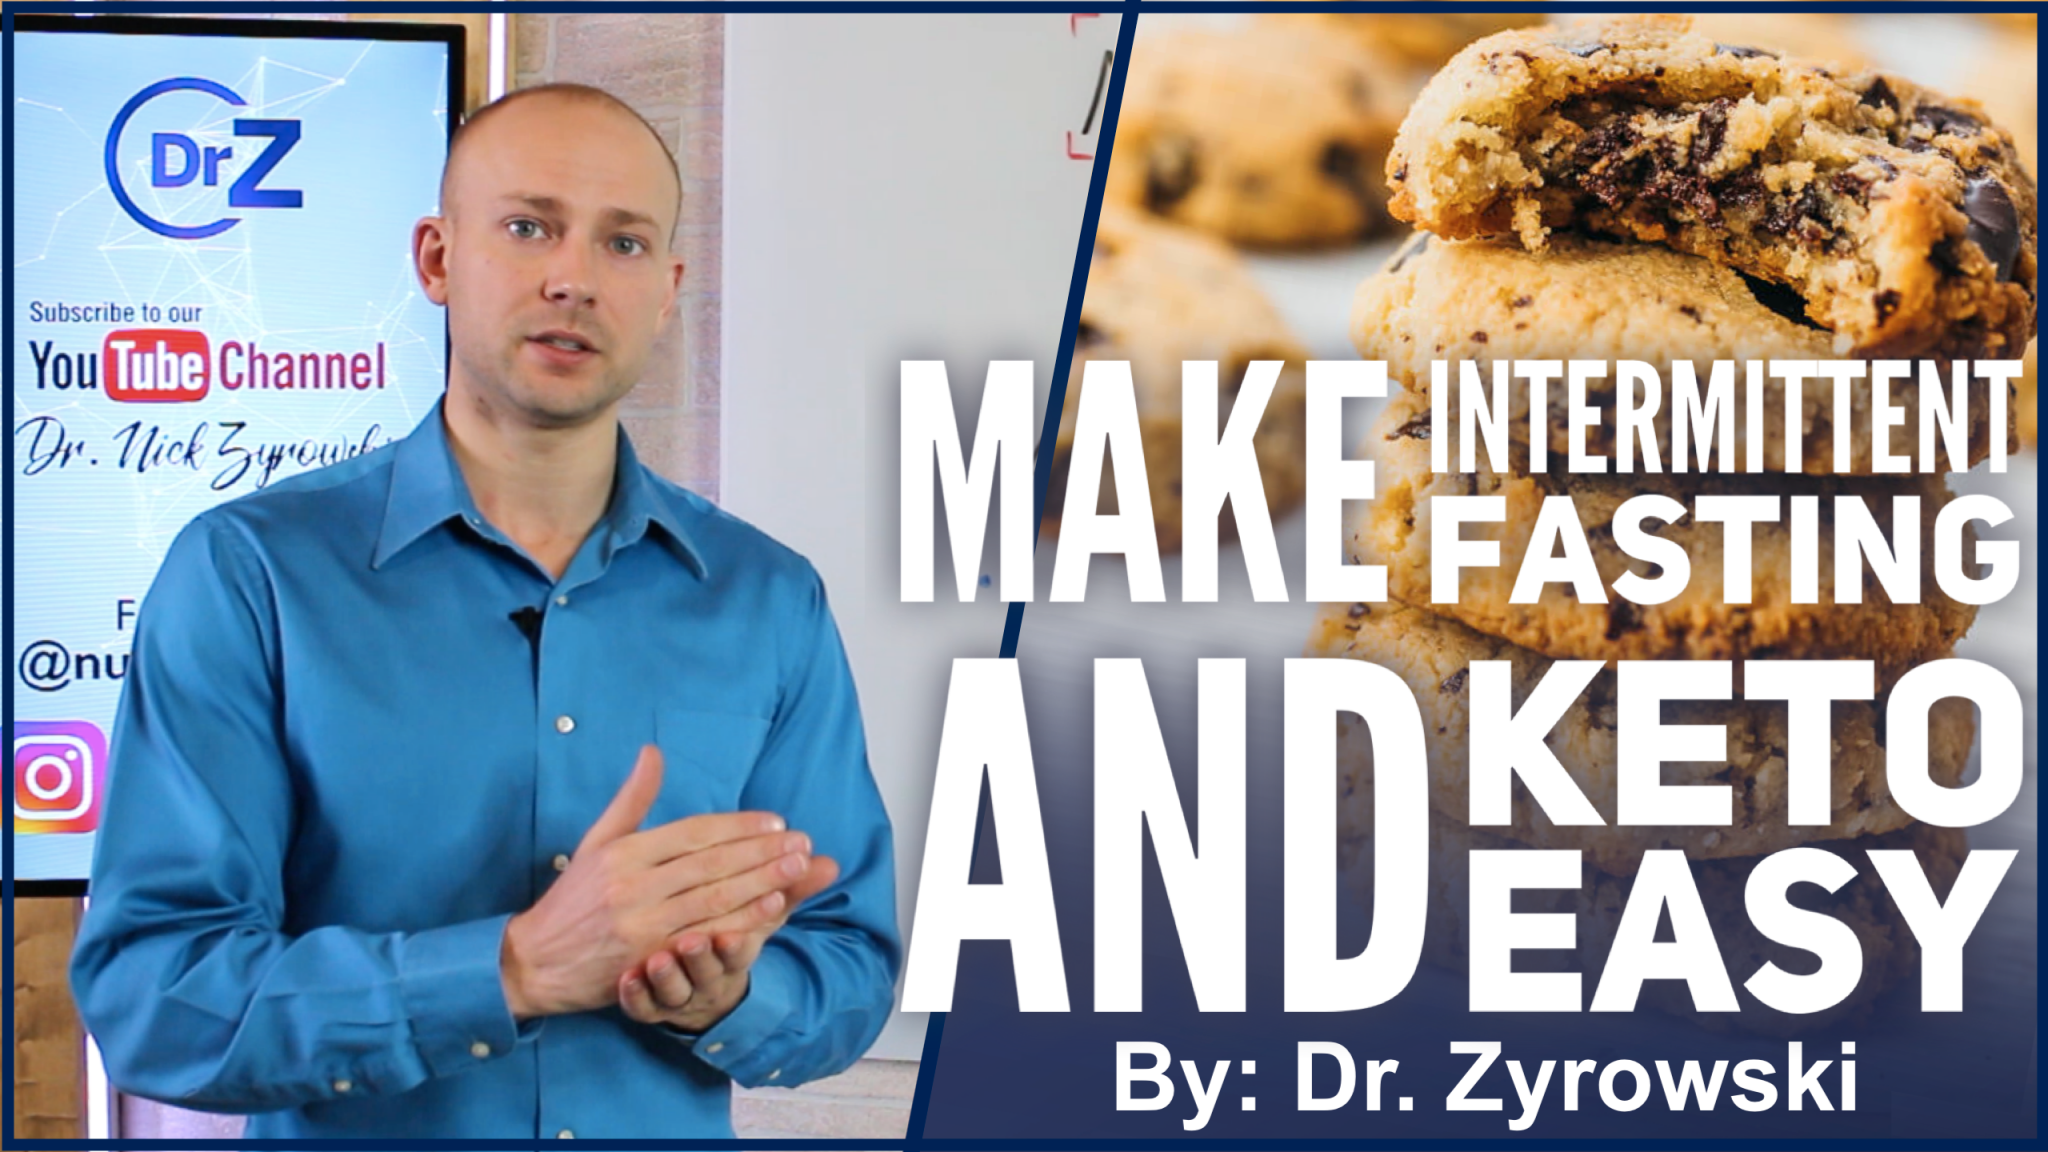 Make Intermittent Fasting and Keto Easy